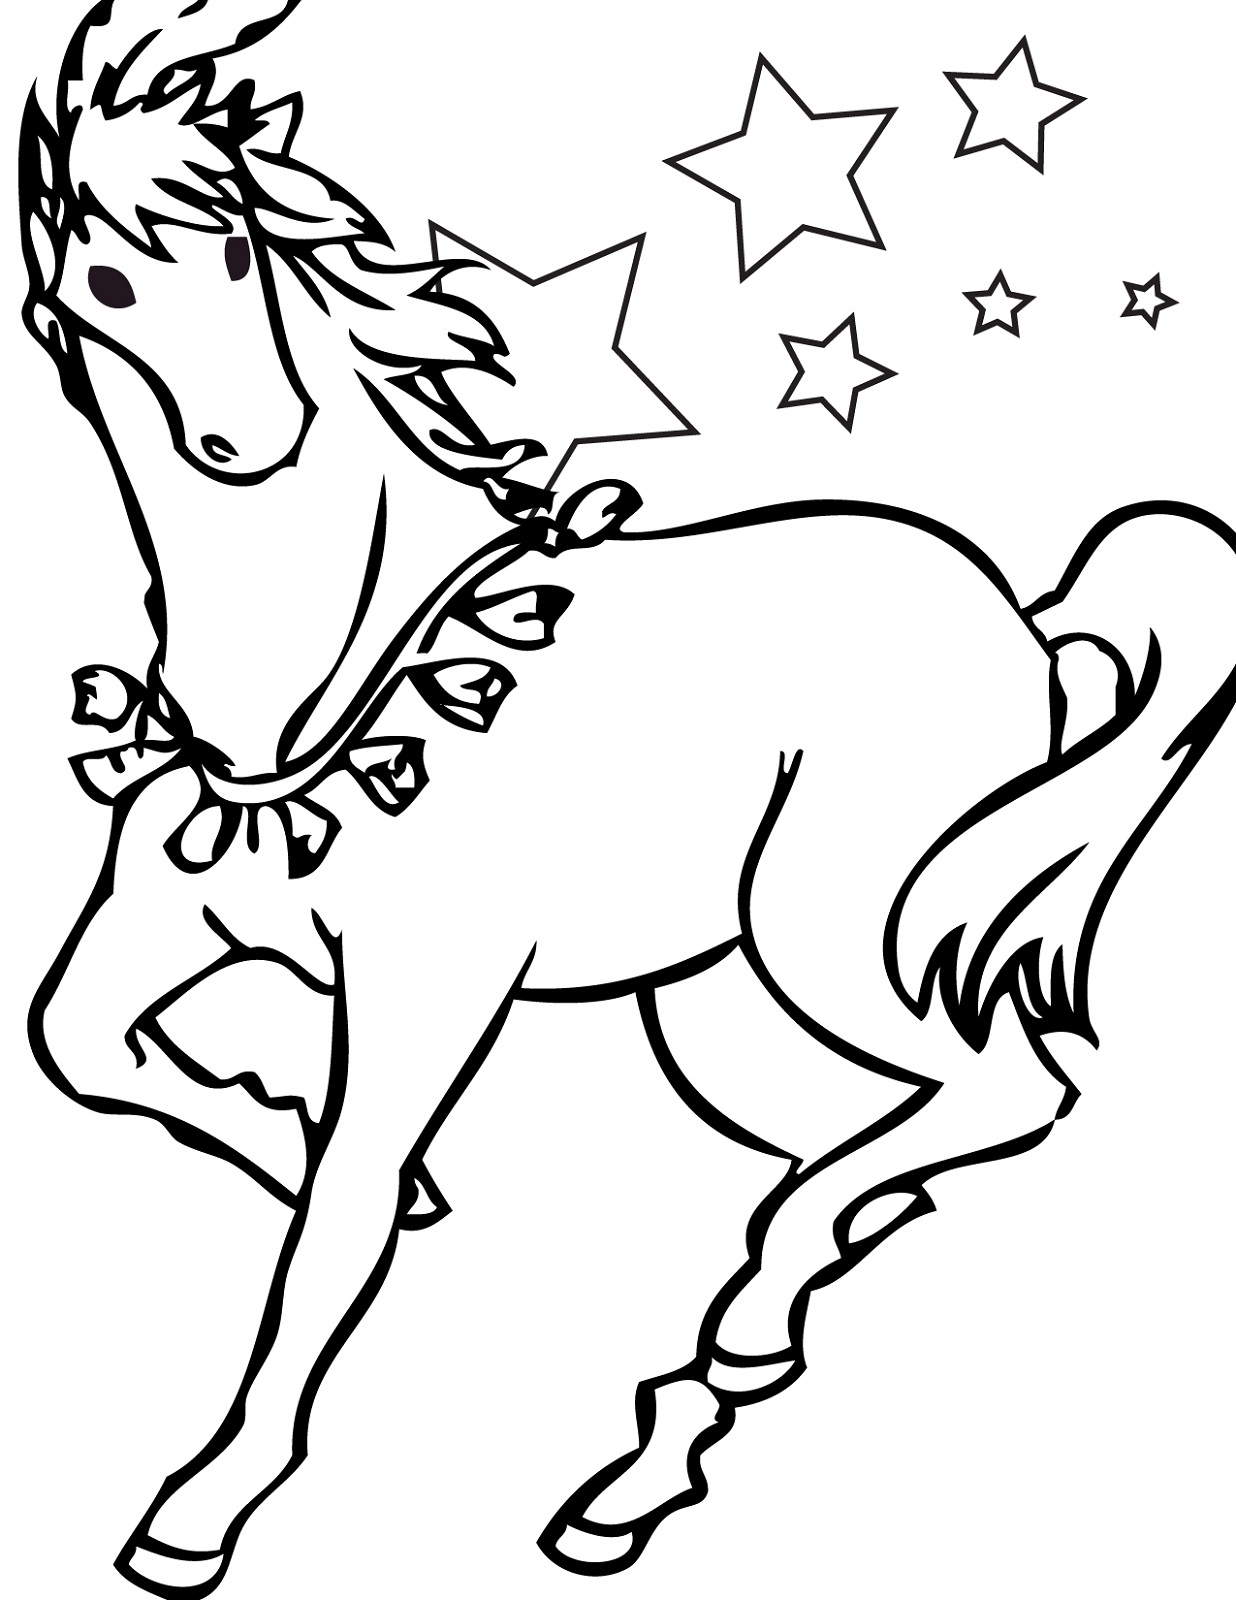 horse pics to color palomino horse coloring pages download and print for free horse to pics color